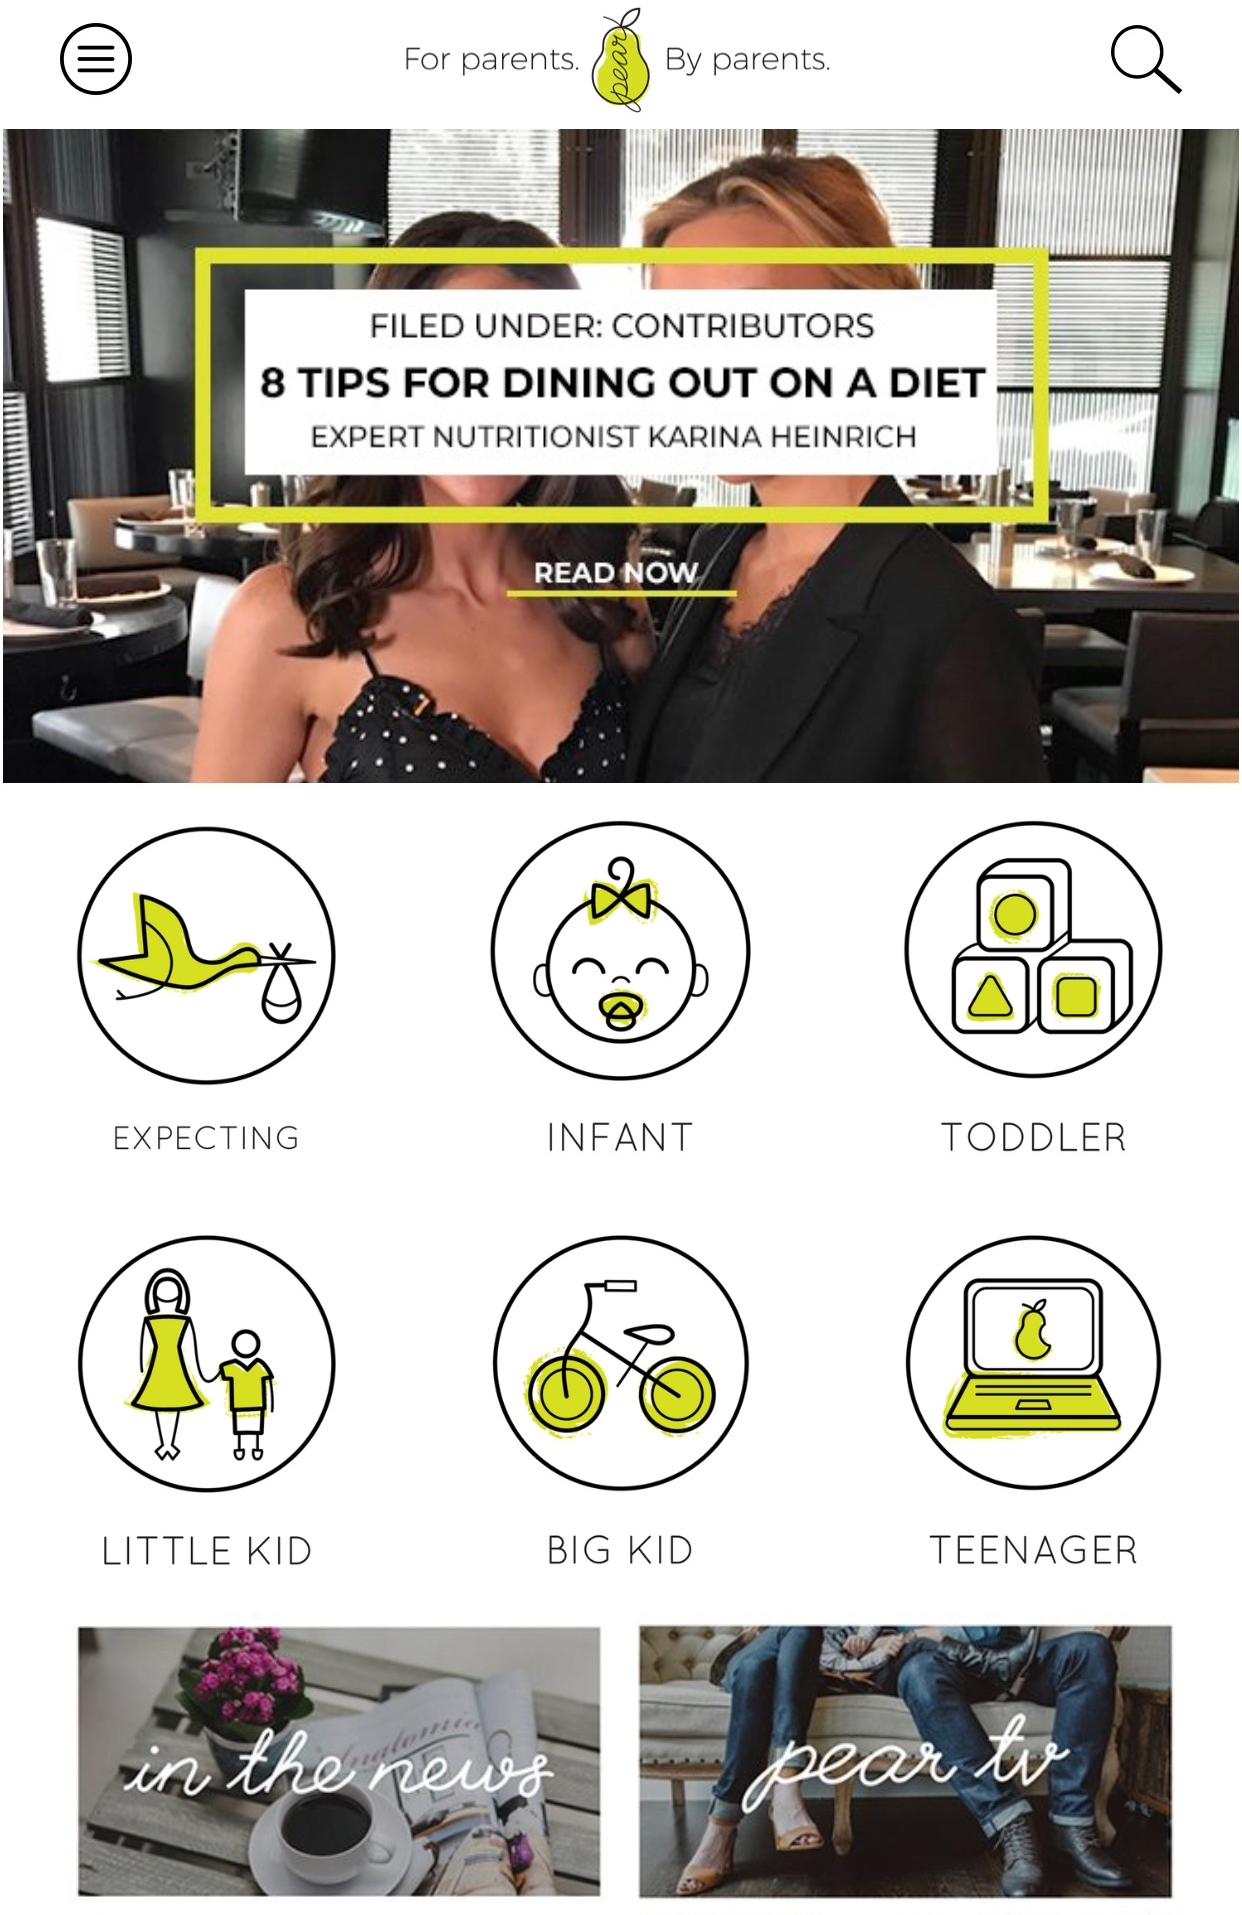 Pear App Karina Heinrich_Dining Out on a Diet.jpg